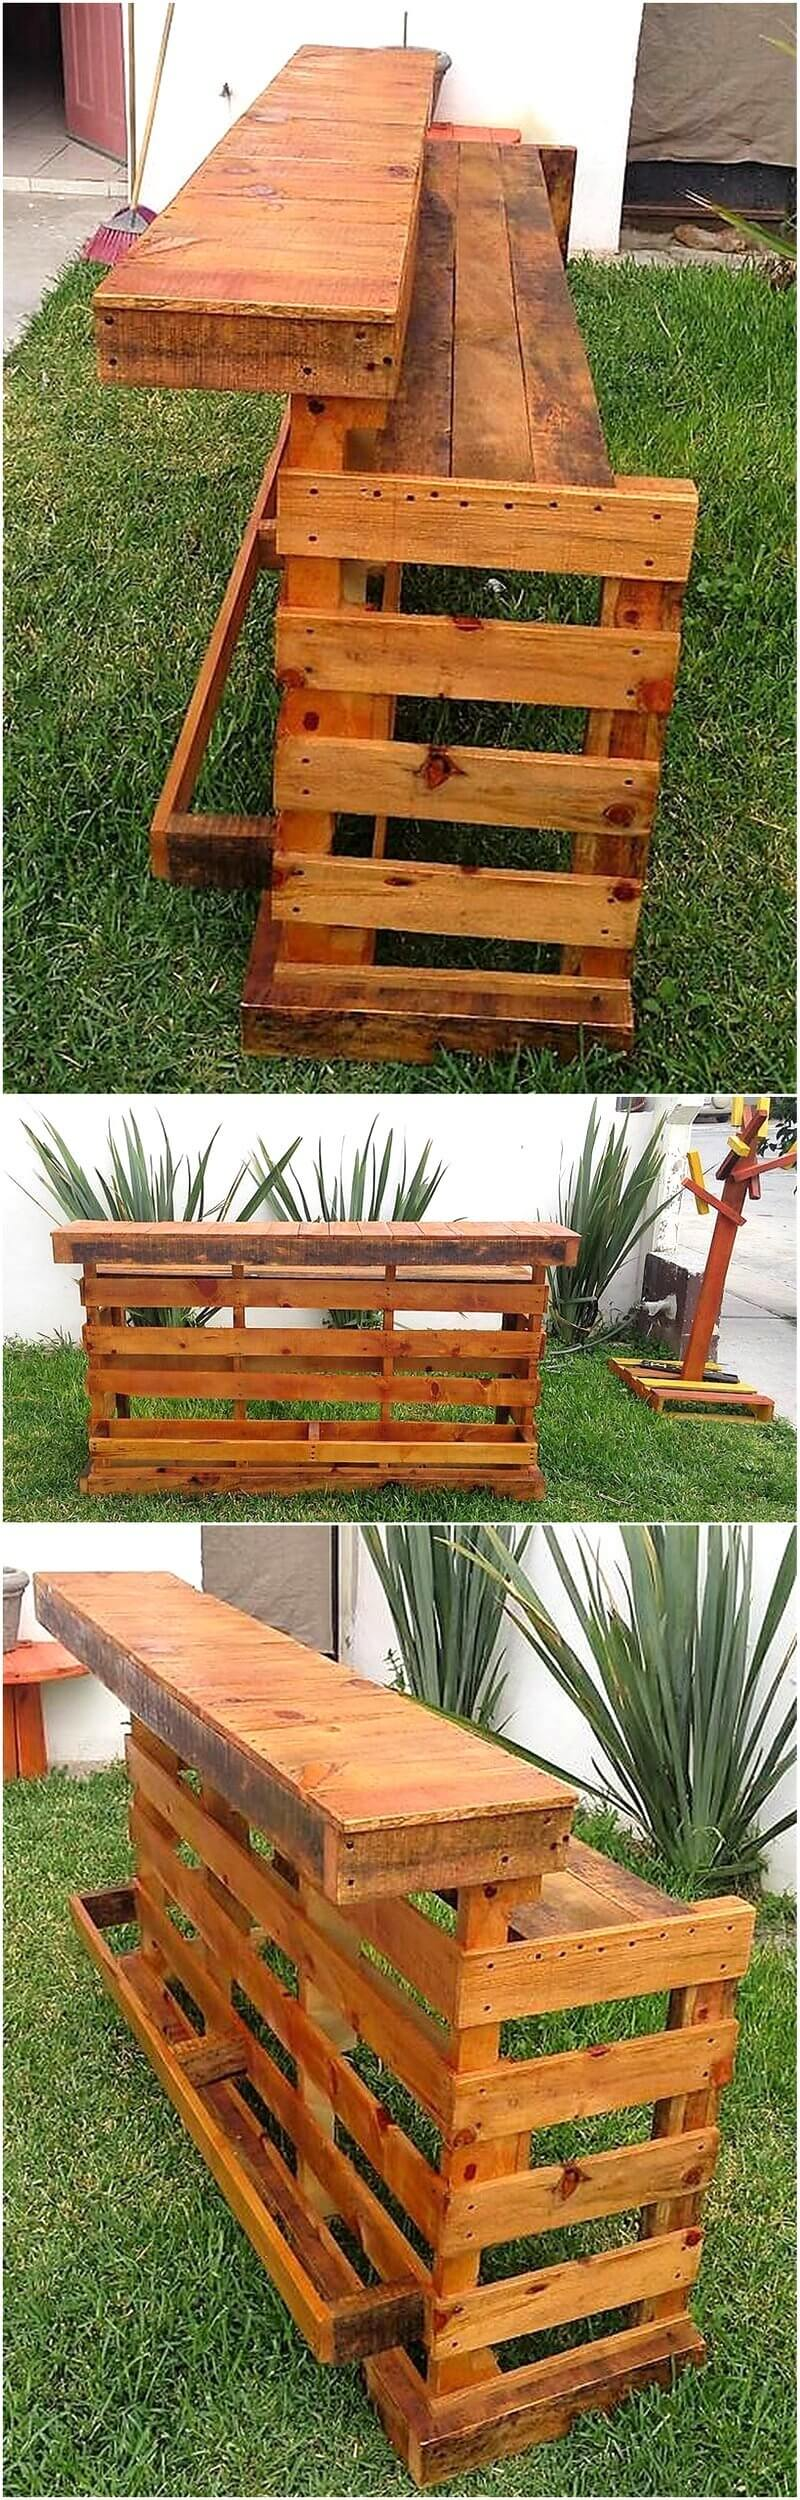 Cheap Creations in Style with Recycled Wood Pallets | Wood Pallet ...